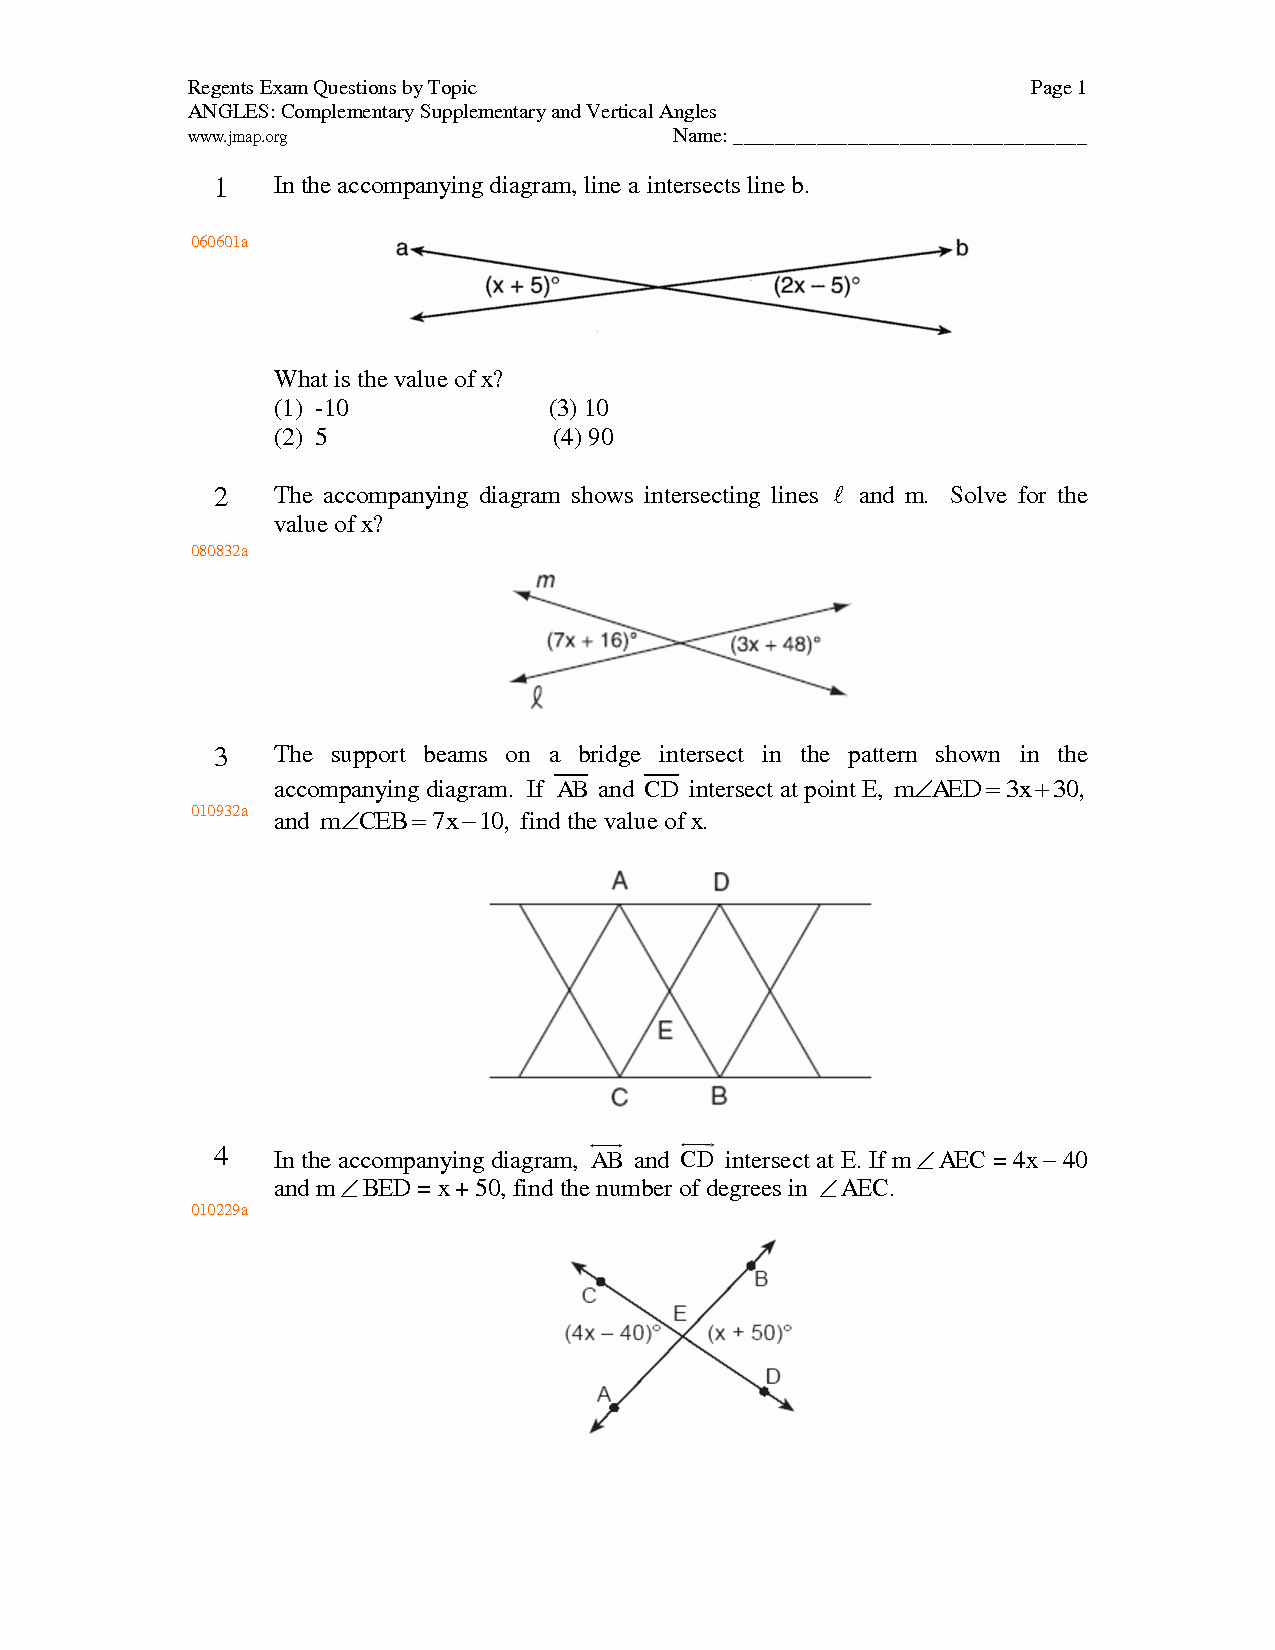 Vertical Angles Worksheet Pdf New Supplementary Plementary Vertical and Adjacent Angles